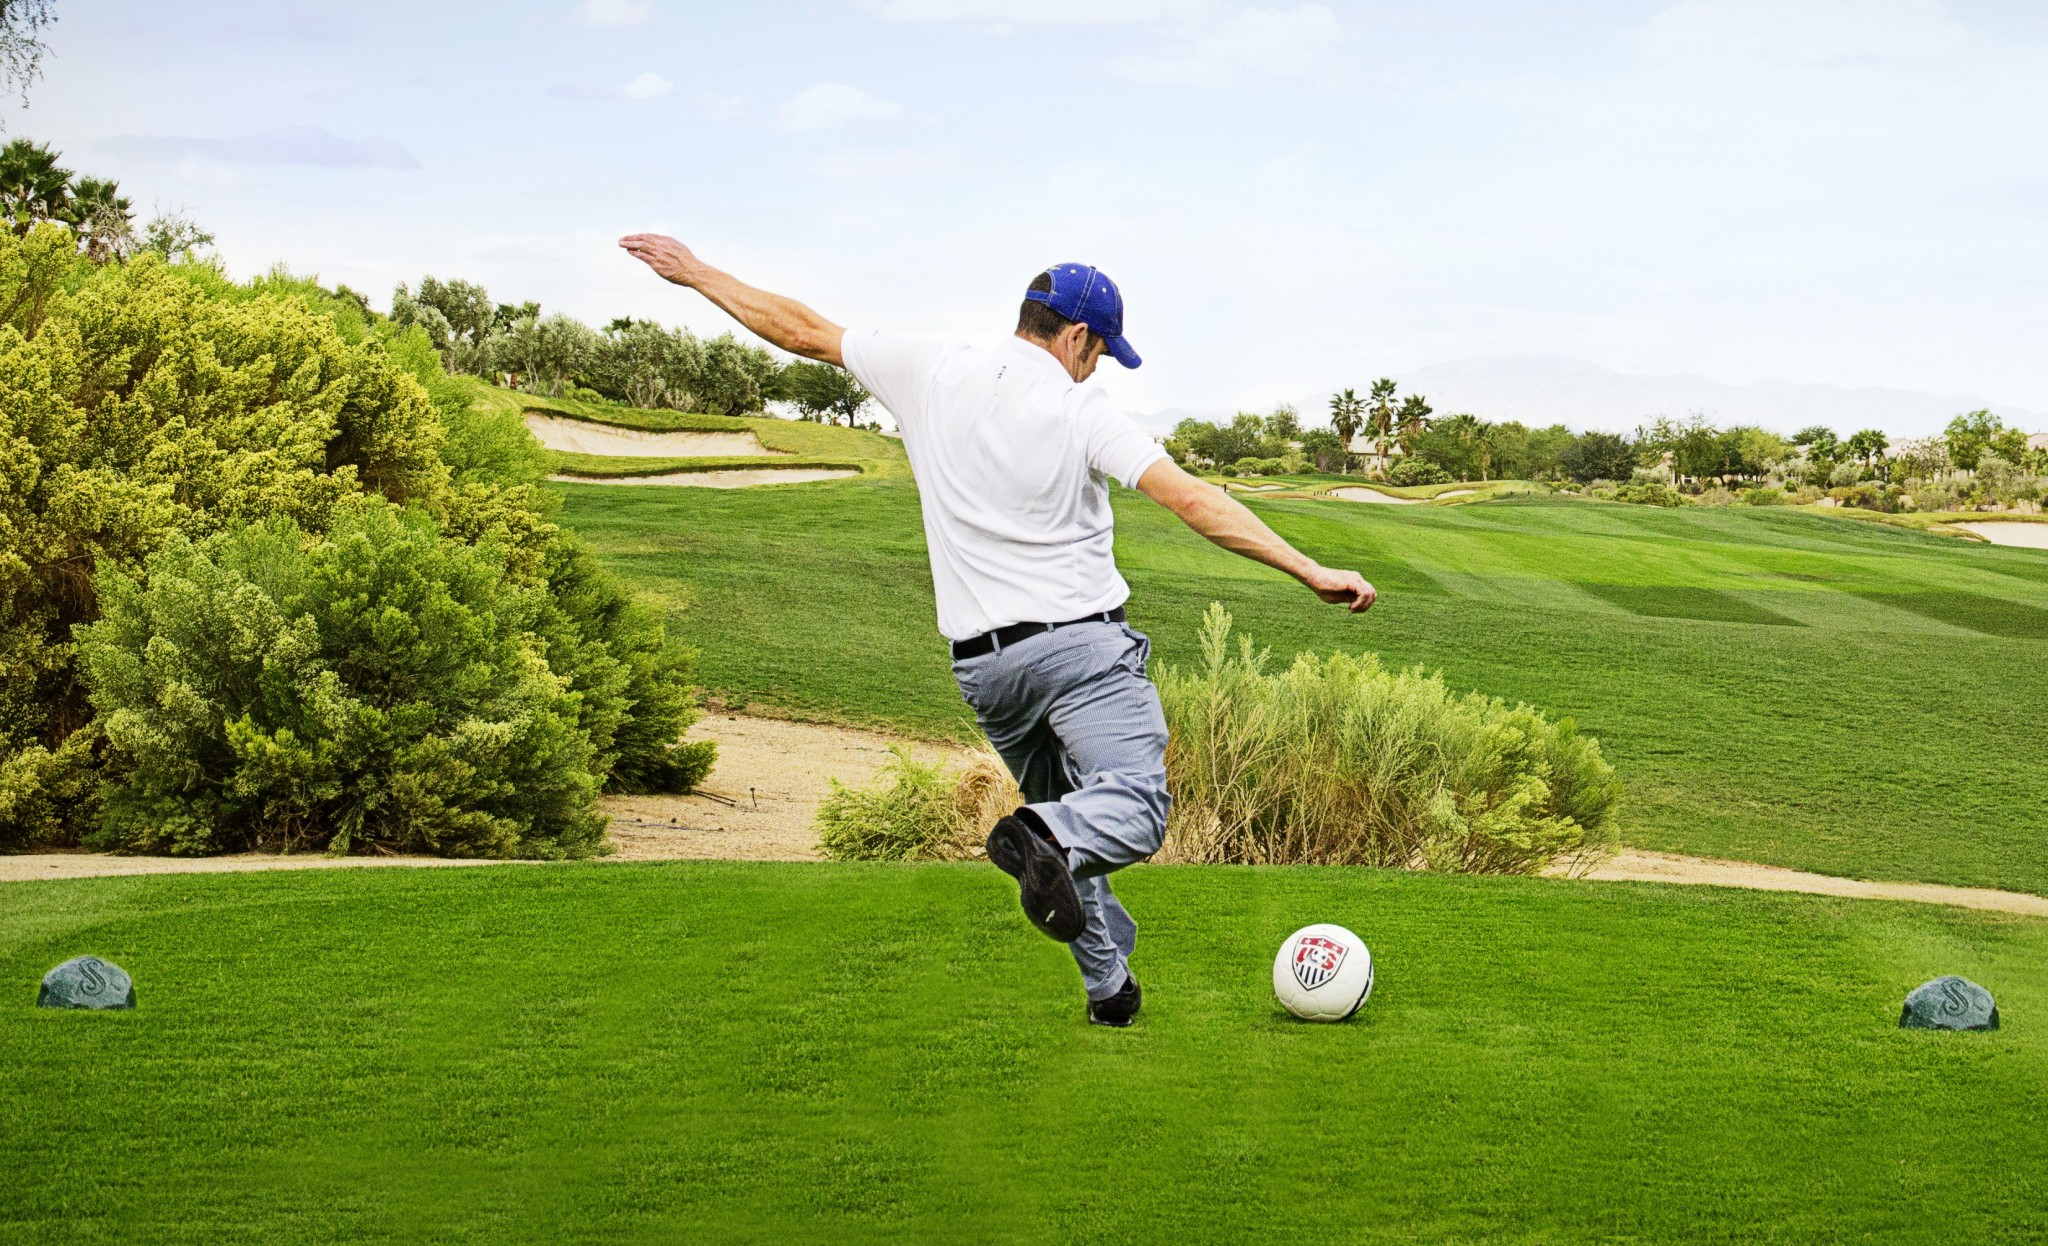 Footgolf, Beginners' golf